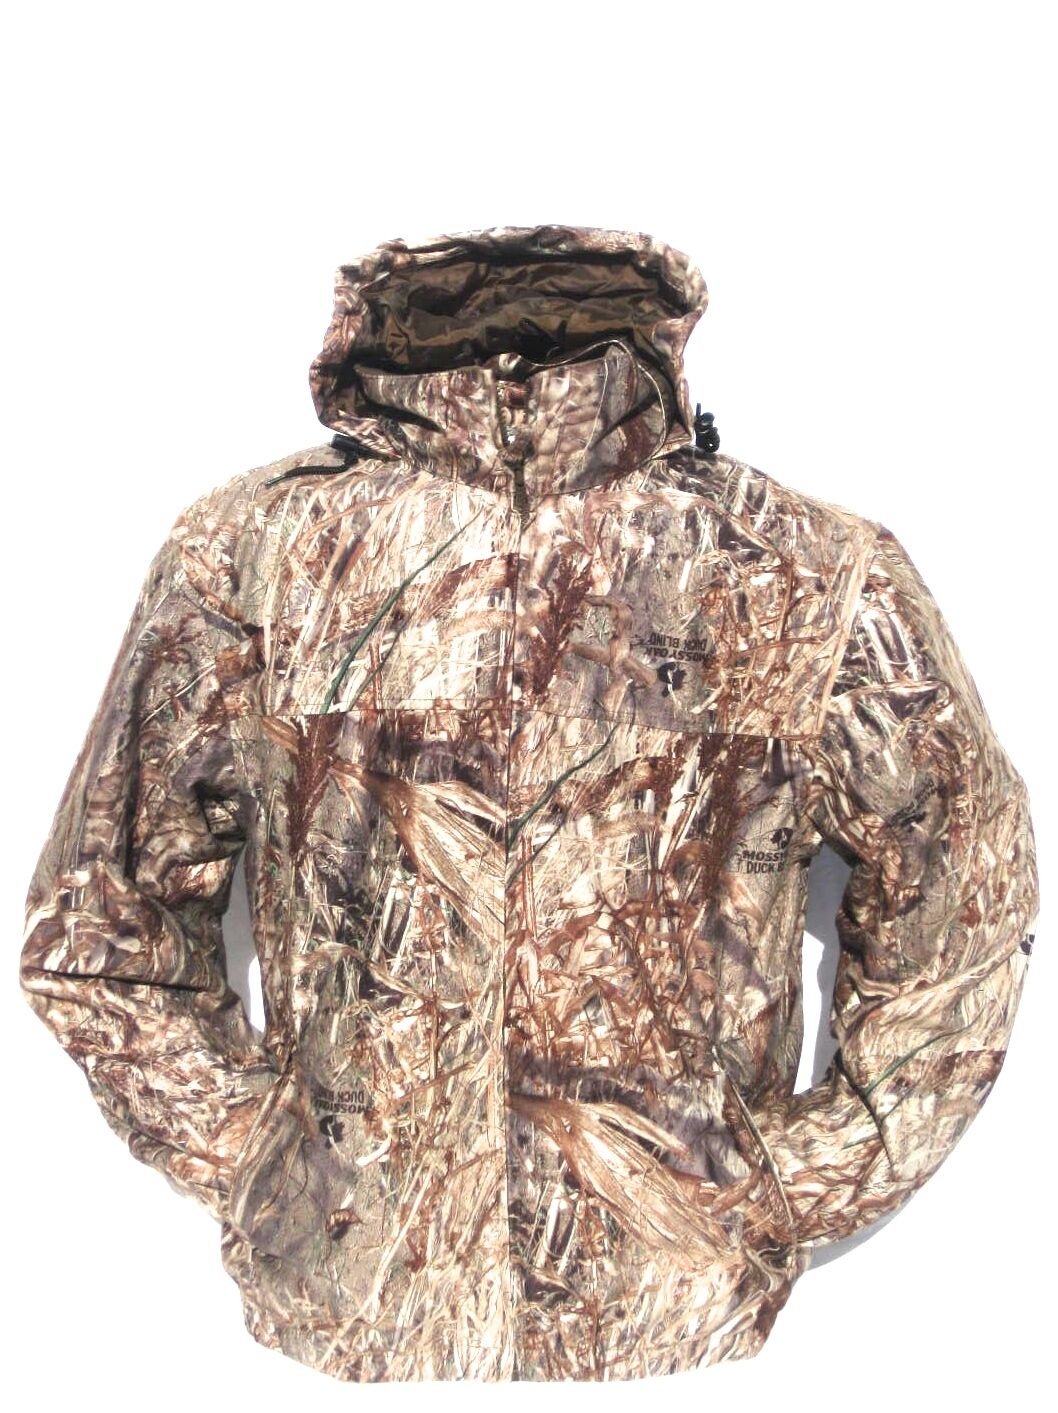 Cabela's Mossy Oak DUCKBLIND Waterfowler Pro Waterproof Windproof Hunting Jacket